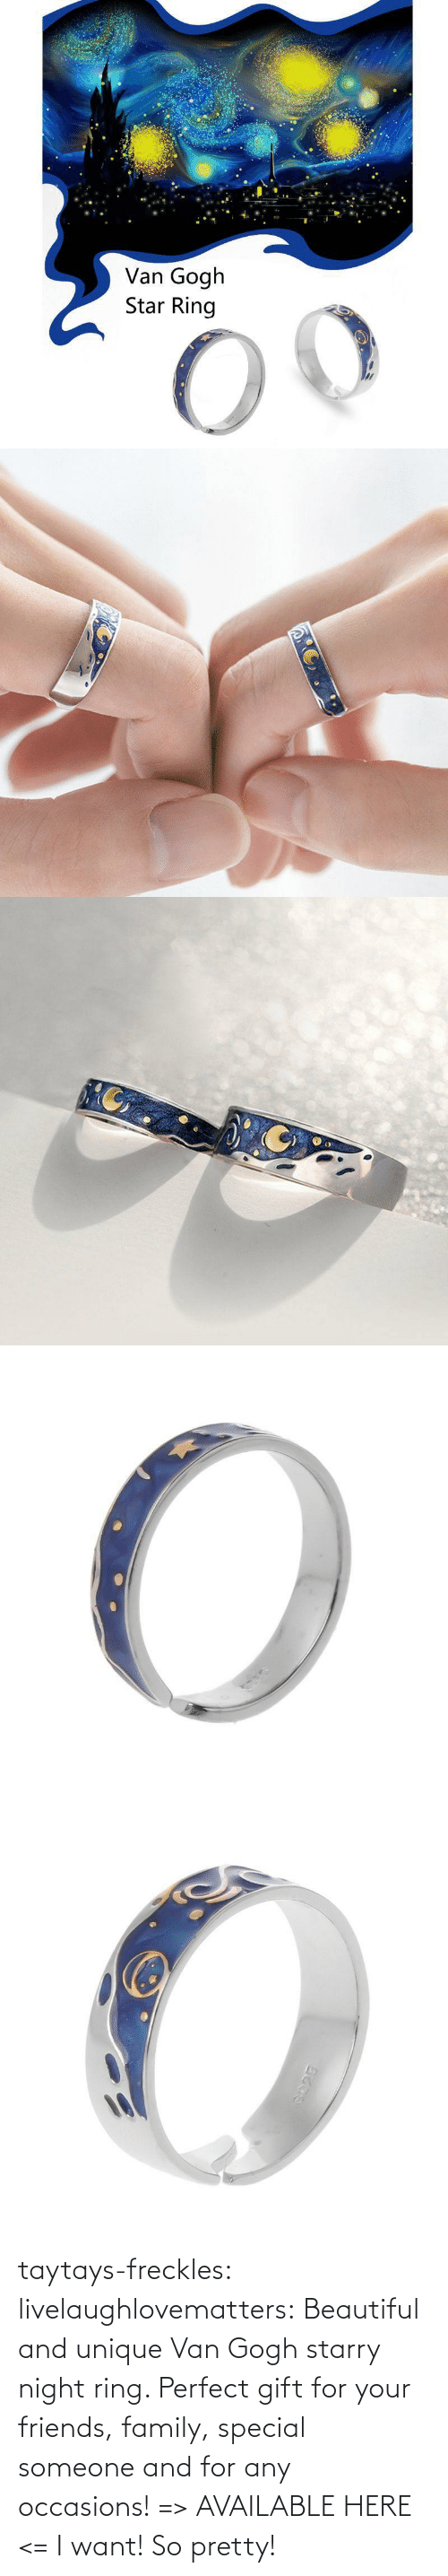 ring: taytays-freckles: livelaughlovematters:  Beautiful and unique Van Gogh starry night ring. Perfect gift for your friends, family, special someone and for any occasions! =>AVAILABLE HERE <=    I want! So pretty!